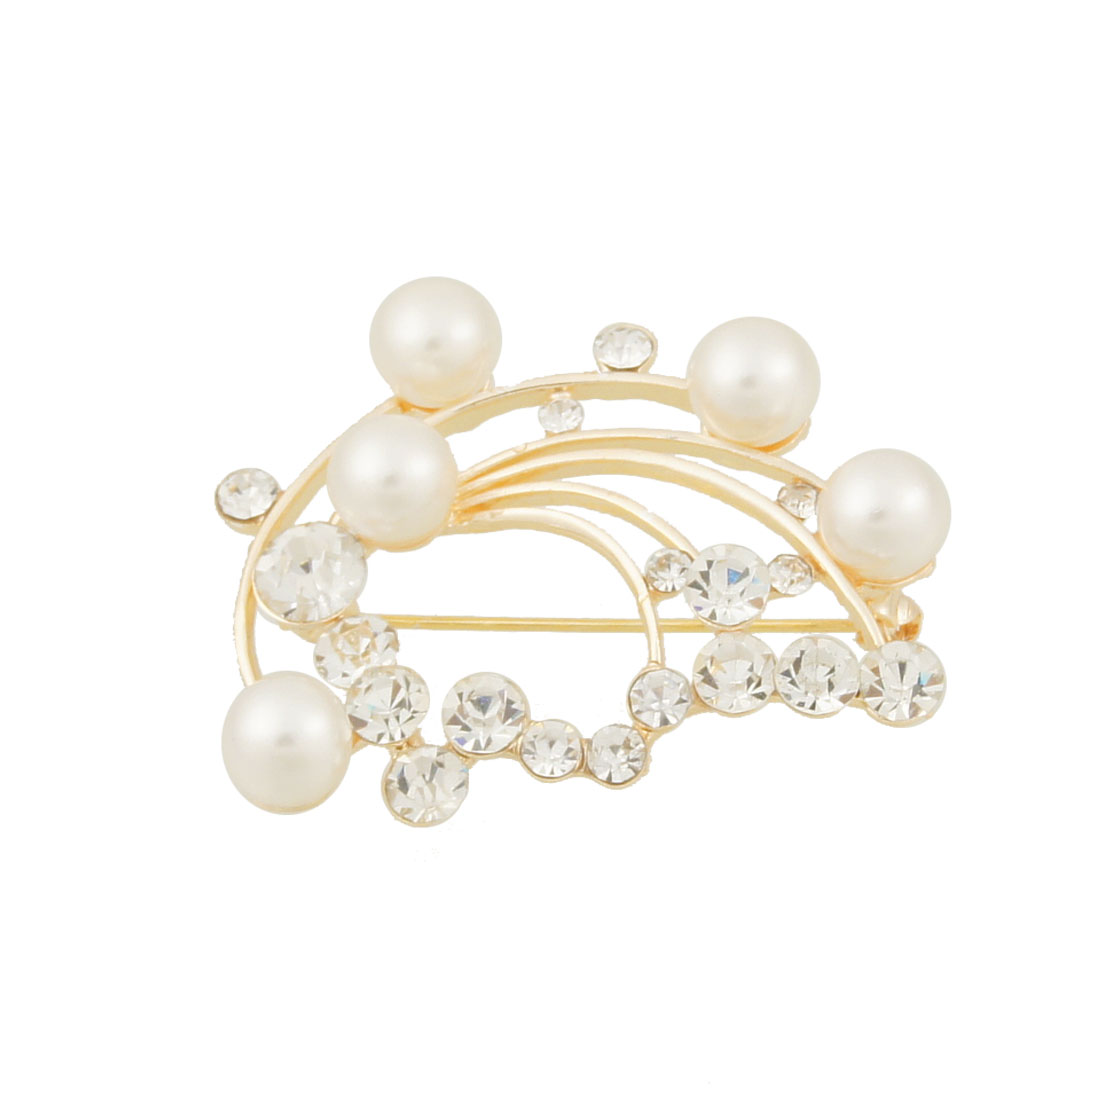 White Faux Pearl Detail Branches Shape Pin Closure Brooch for Lady